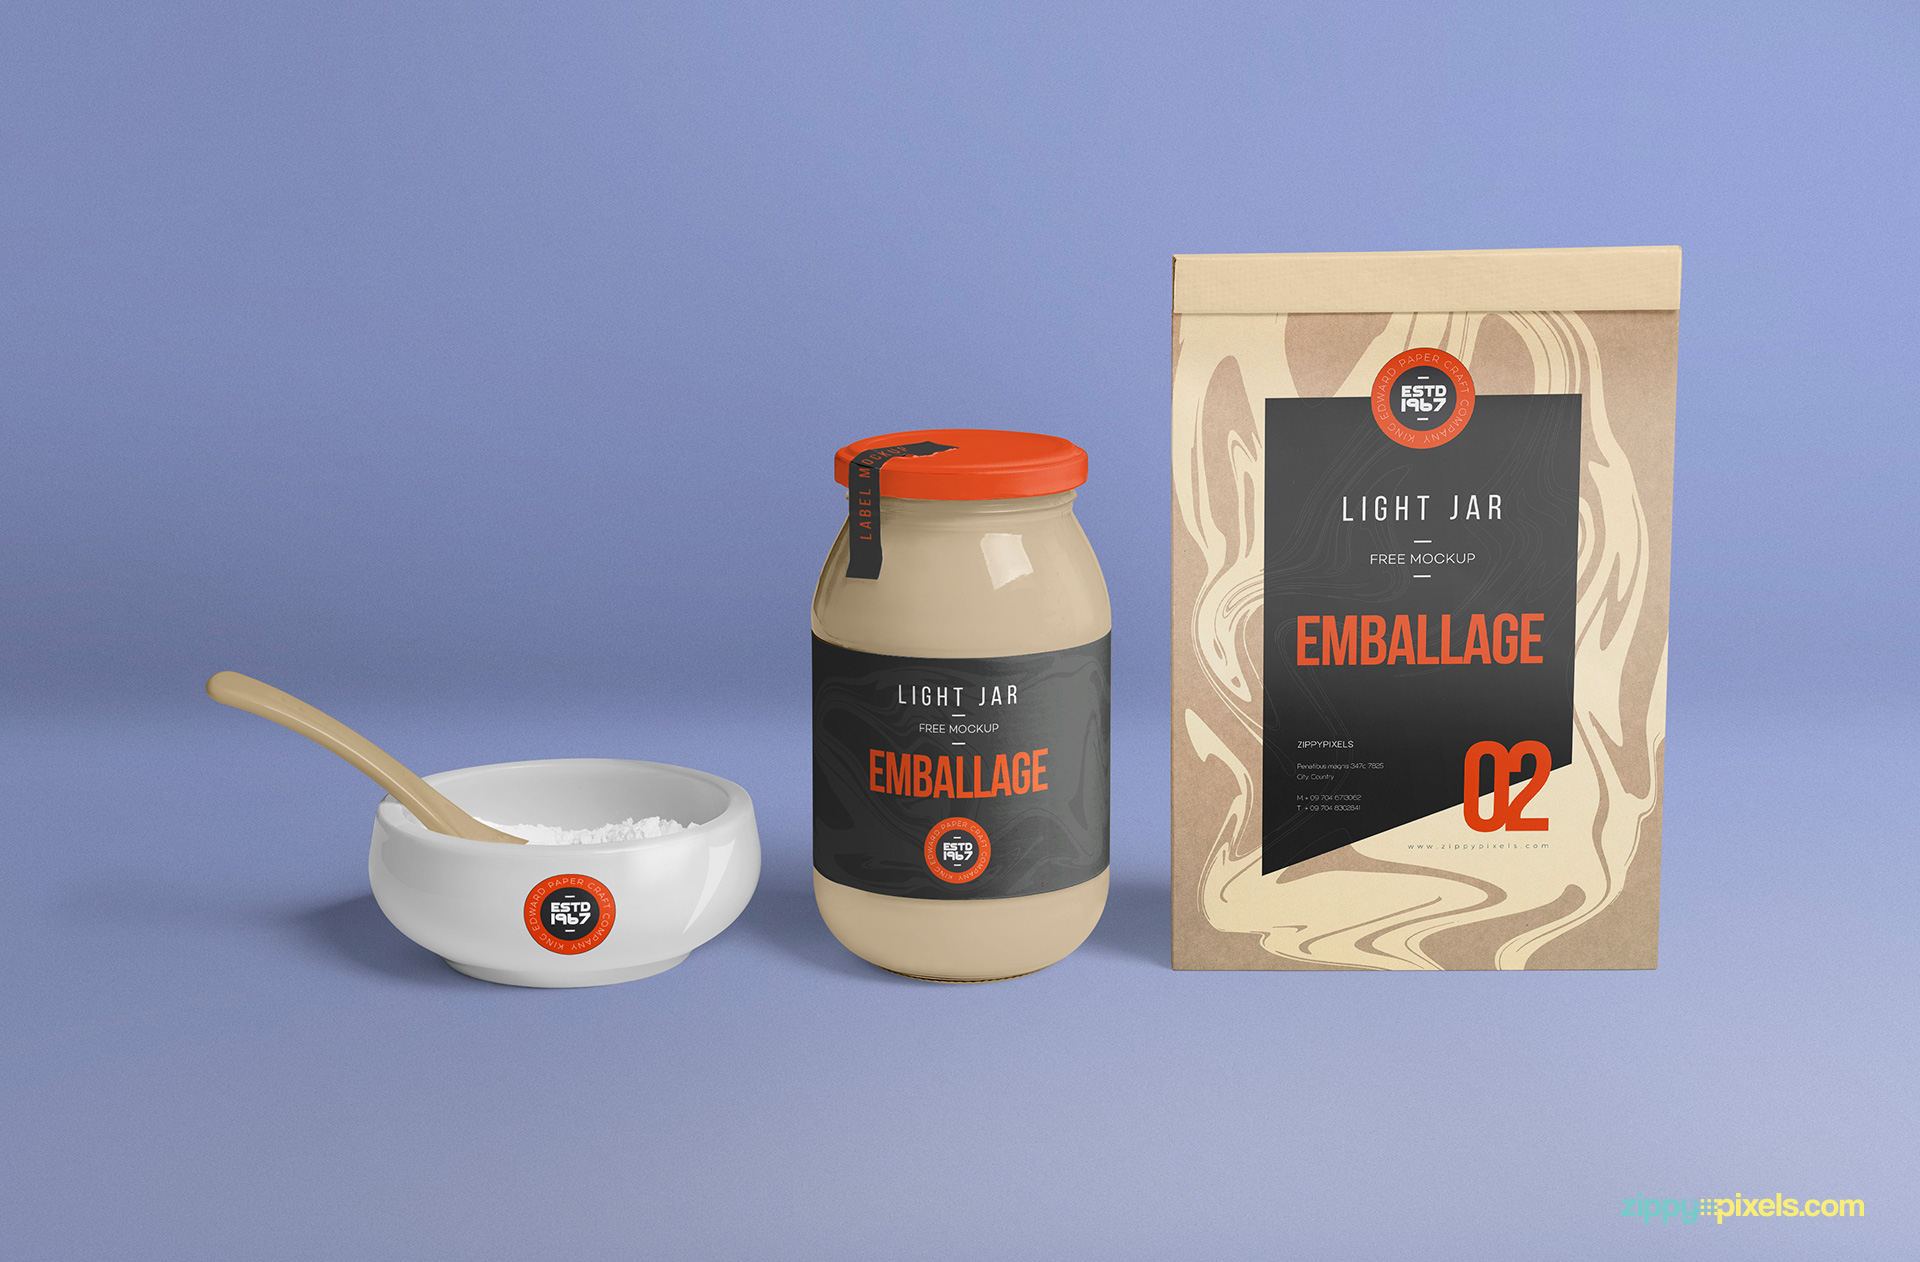 Perfect light jar mockup with customizable packaging bag and ceramic bowl.